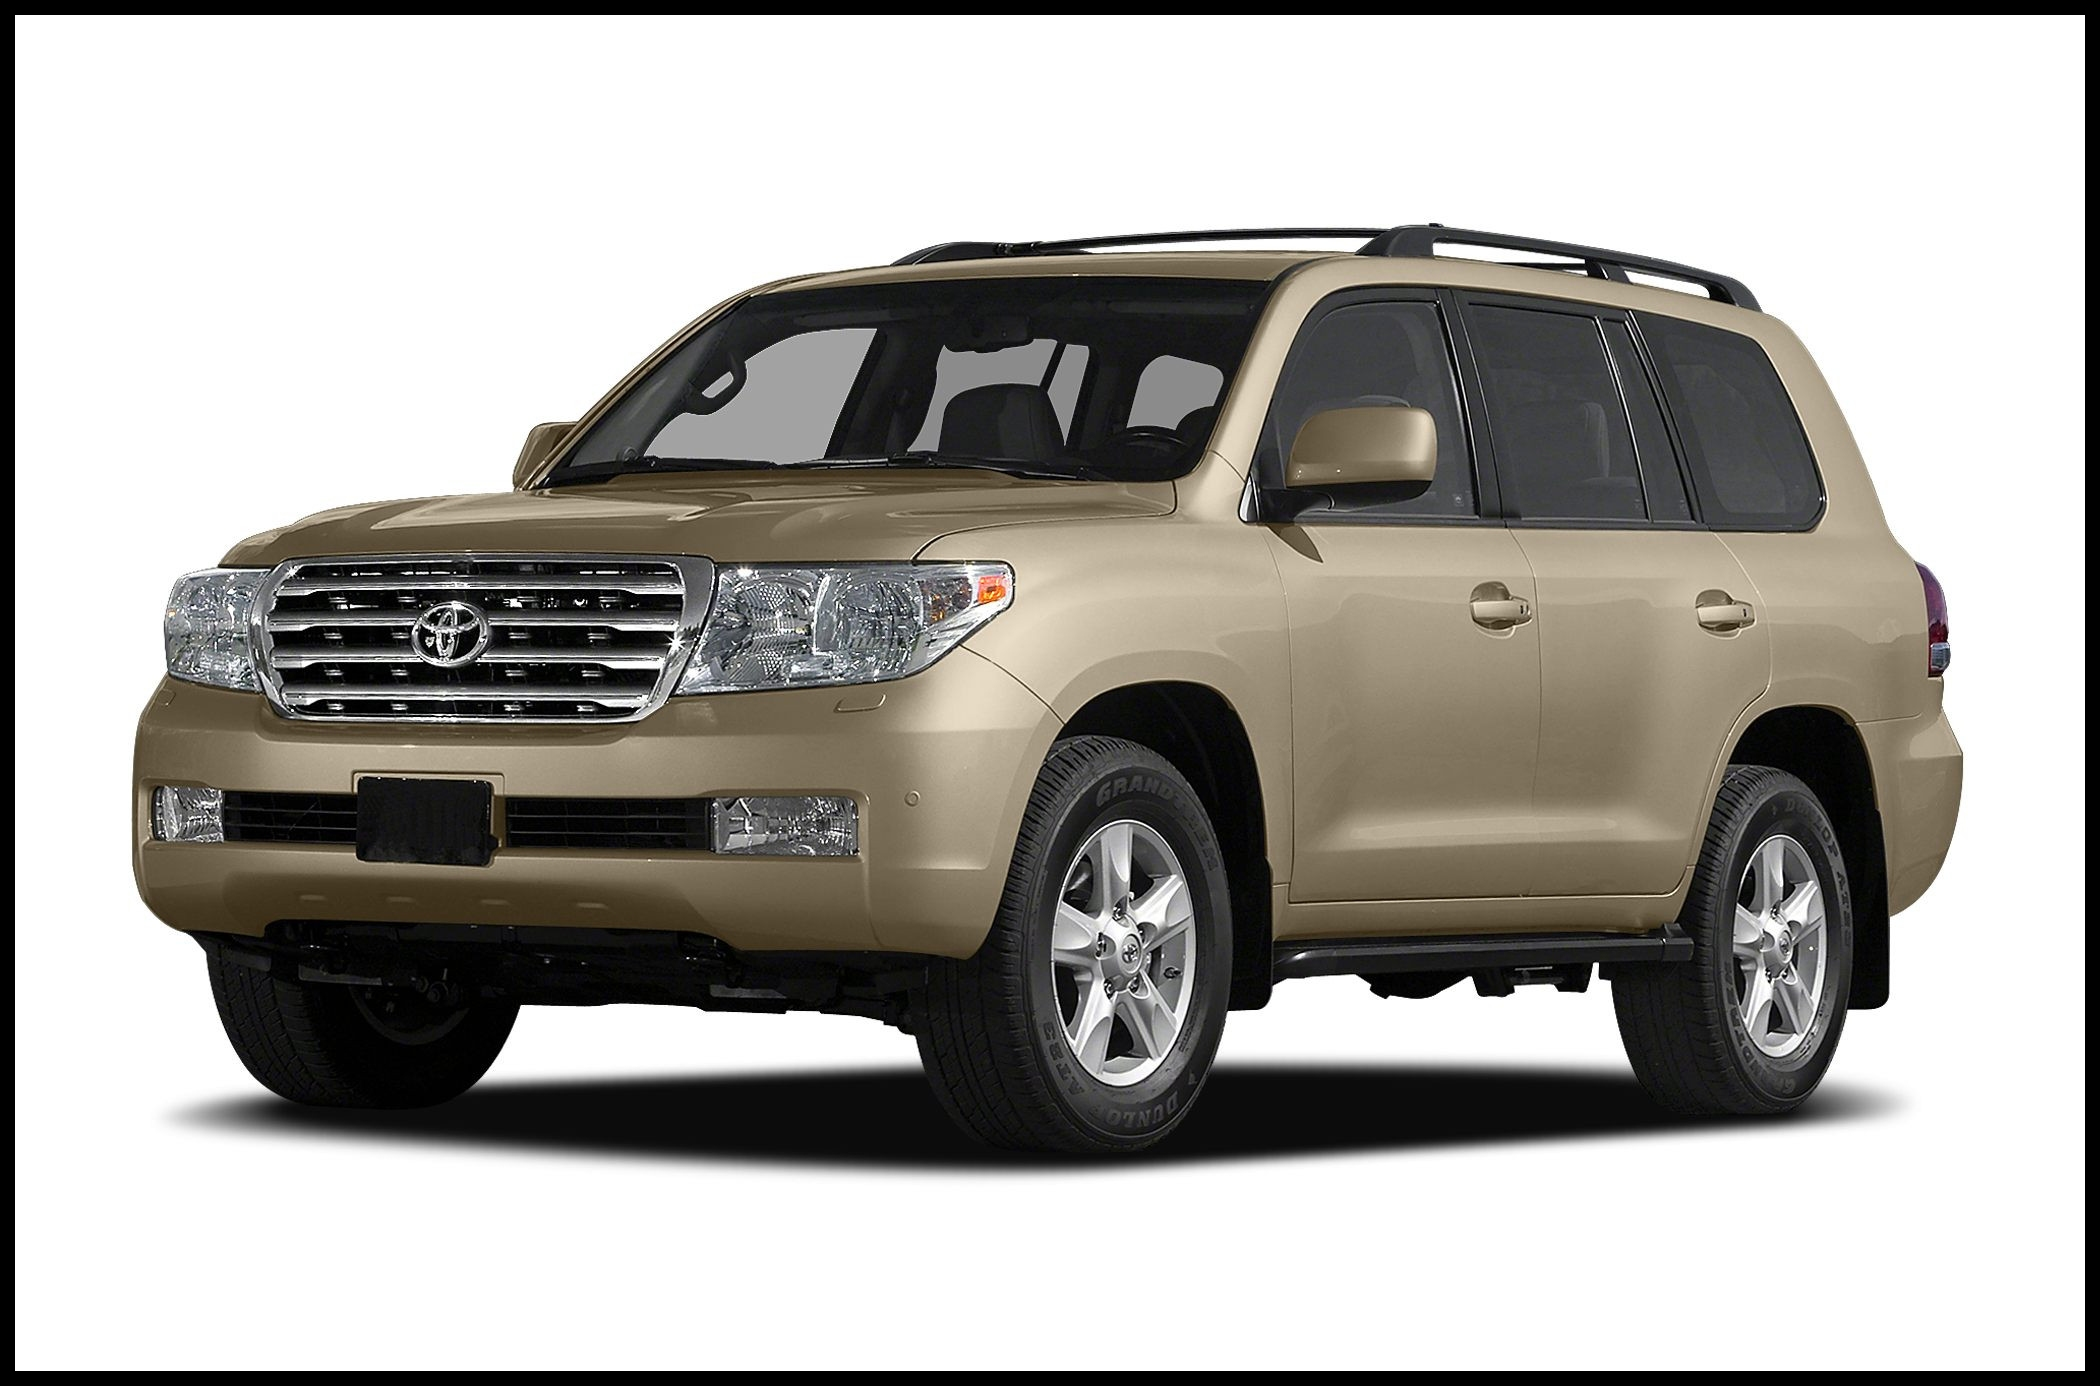 Balise toyota West Springfield Ma New 2011 toyota Land Cruiser New Car Test Drive